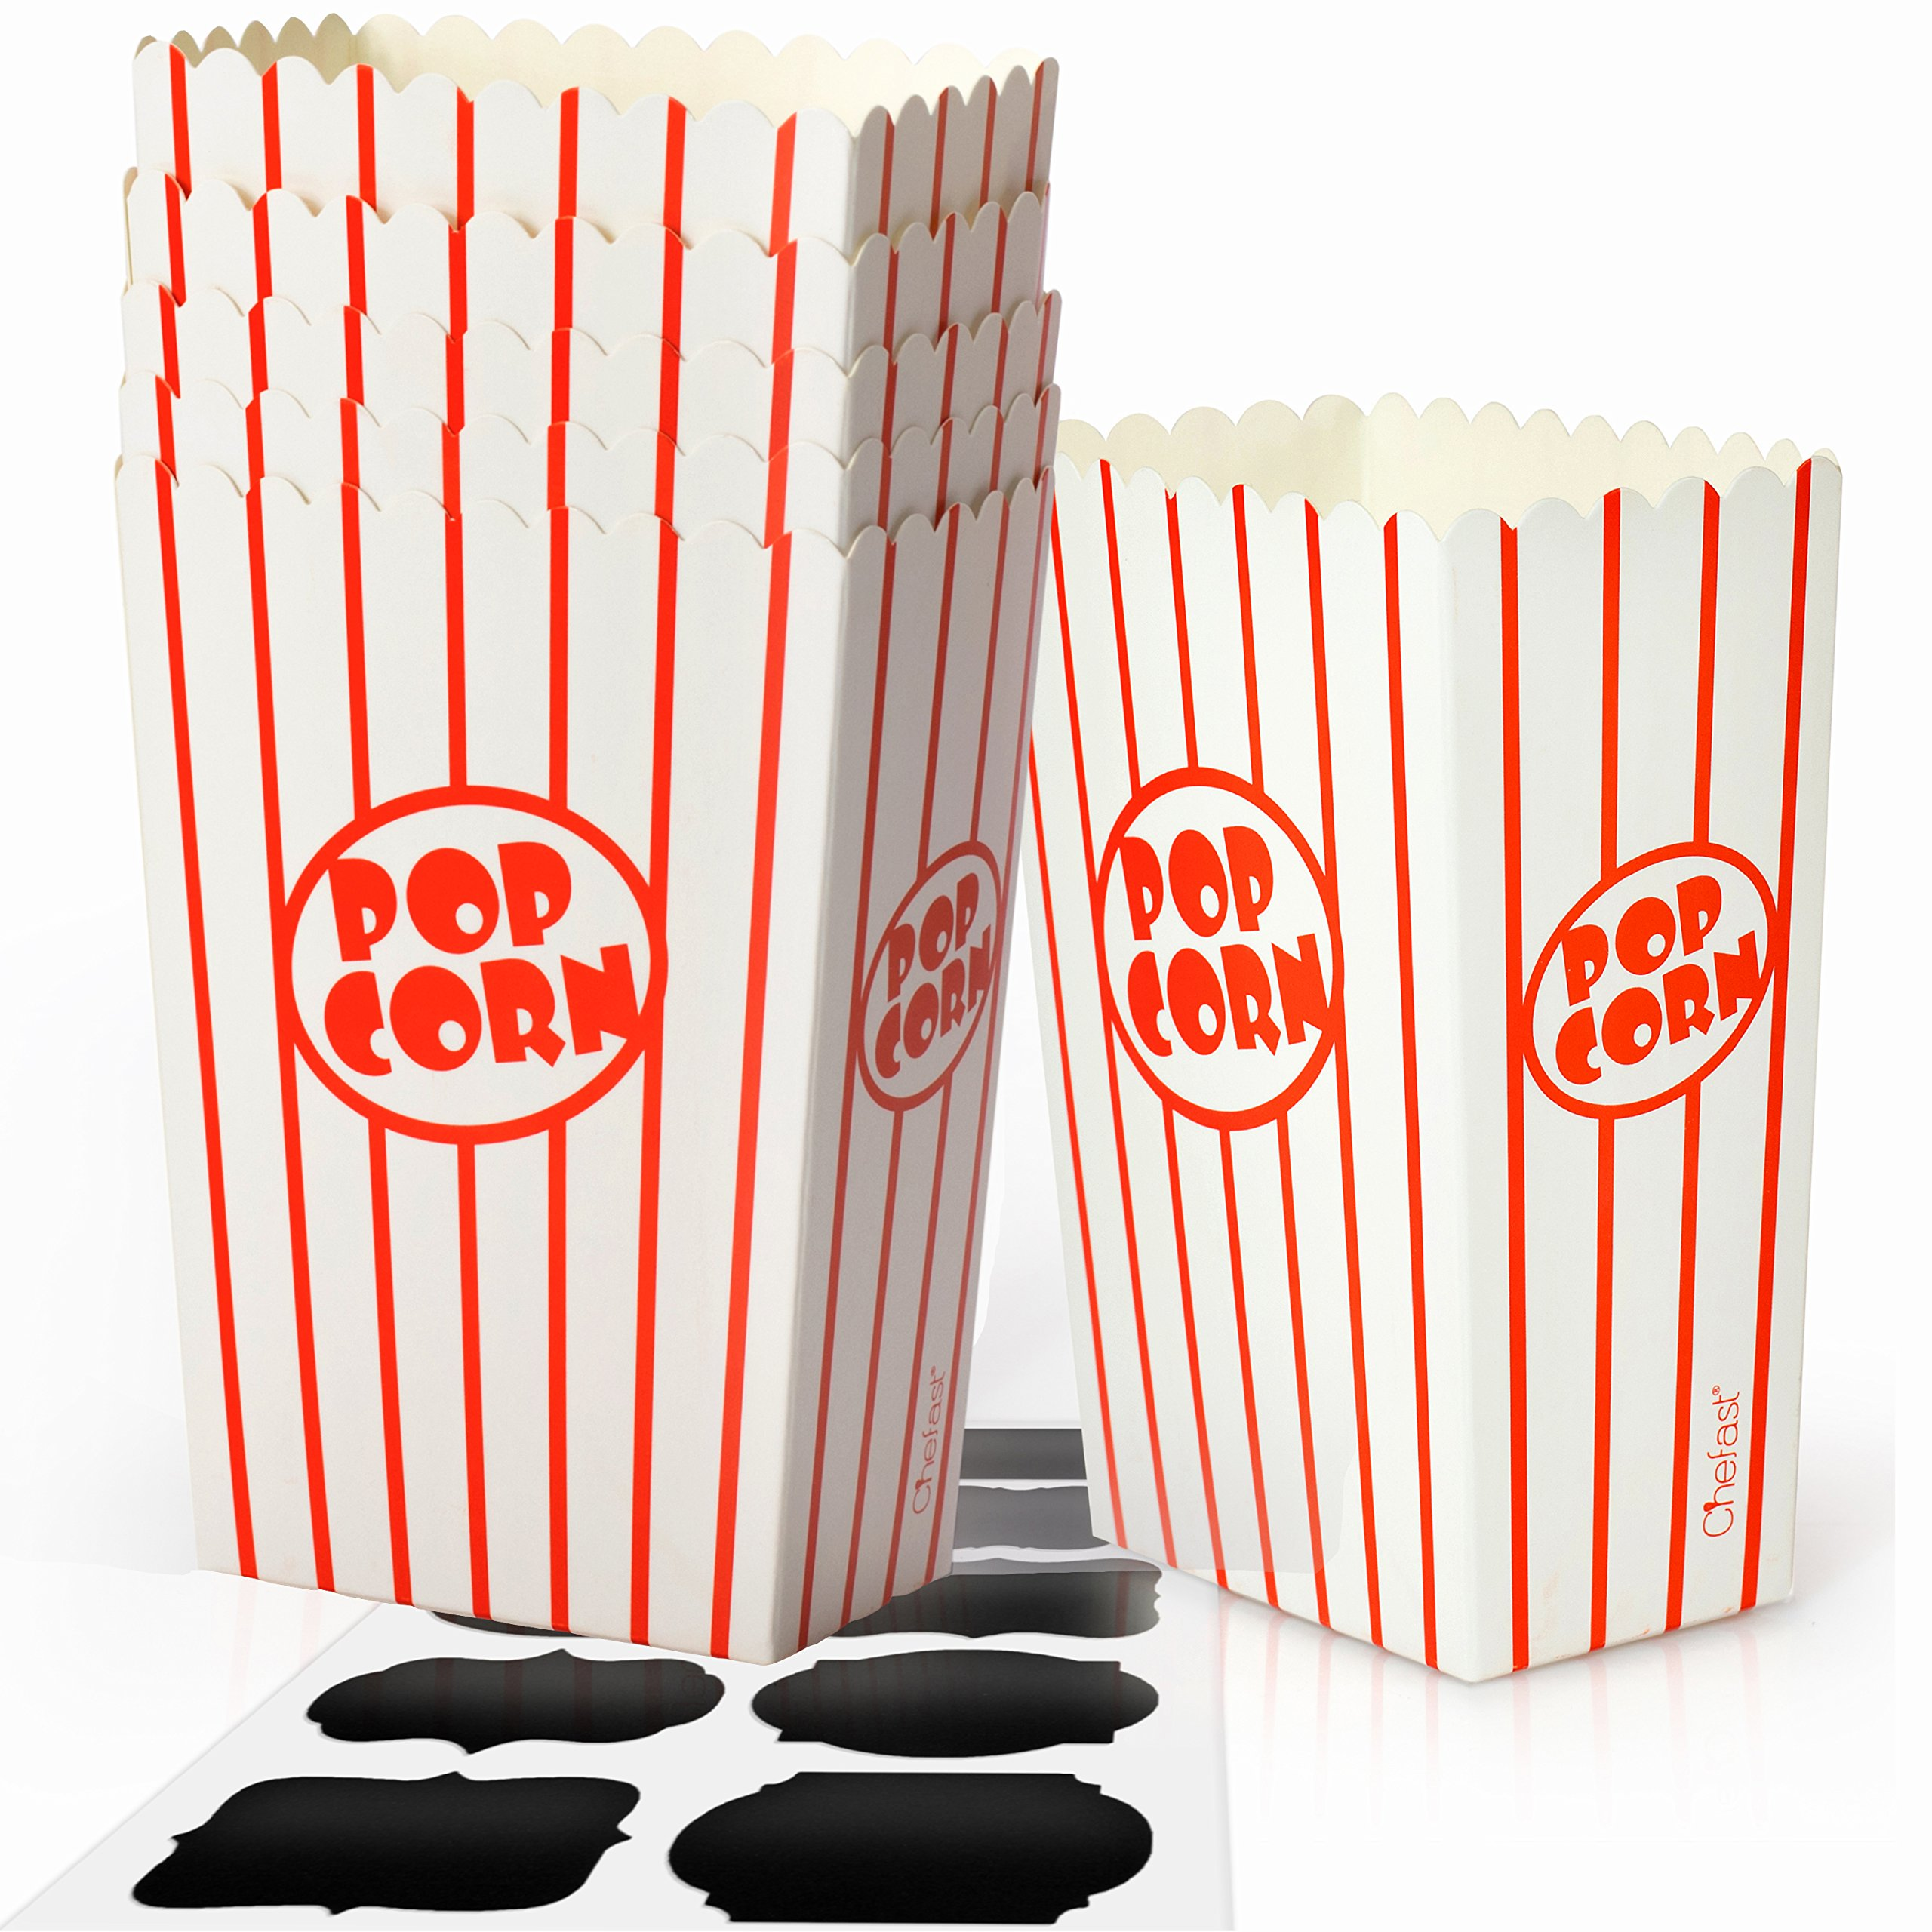 Chefast Small Popcorn Box Pack - 30x Red and White Striped Mini Boxes With 10x Chalkboard Stickers - Ultimate Party Favor - Perfect for Birthday and Theater Themed Parties, Movie Nights, and Carnivals by Chefast